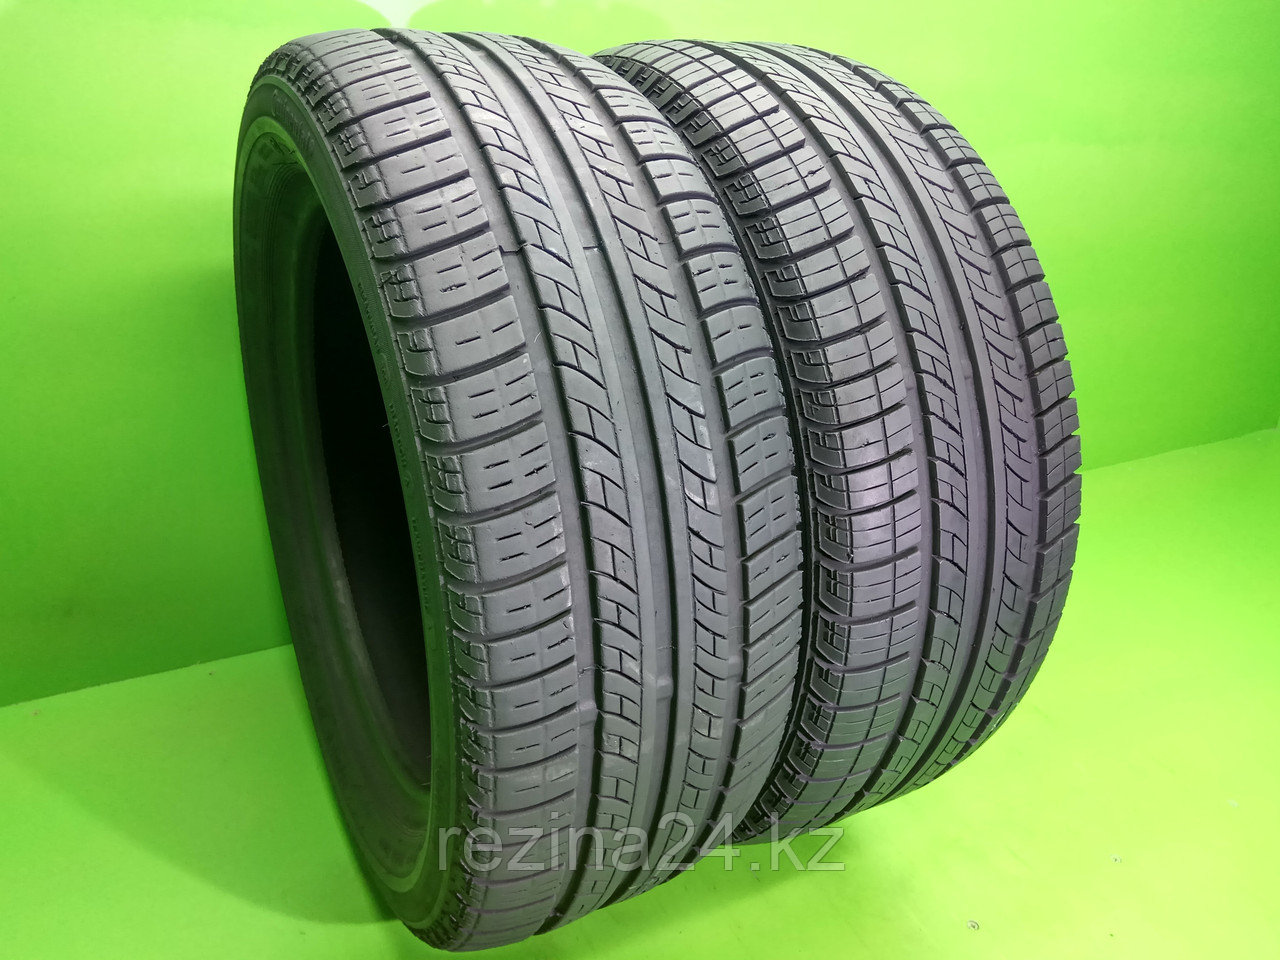 195/50 R 15 (82T) CONTINENTAL Conti Eco Contact Ep летние б/у шины